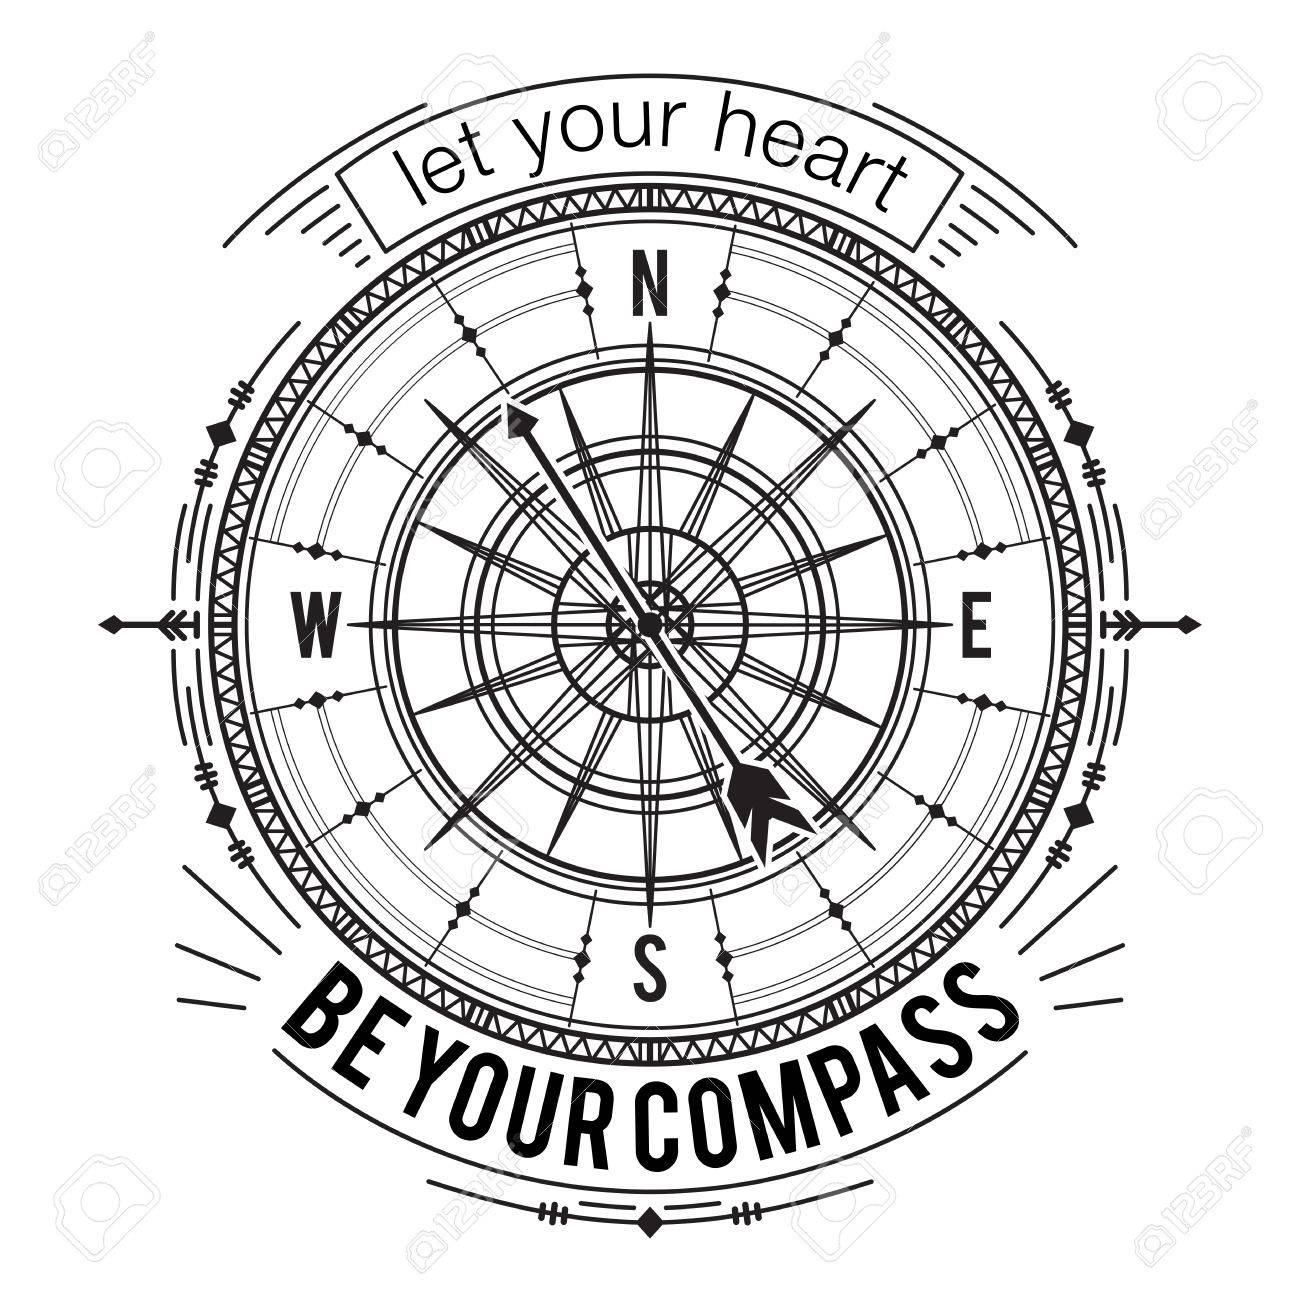 Typography poster with vintage compass and hand drawn elements. Inspirational quote. Let your heart be your compass. Concept design for t-shirt, print, card, tattoo. Vector illustration - 68896603